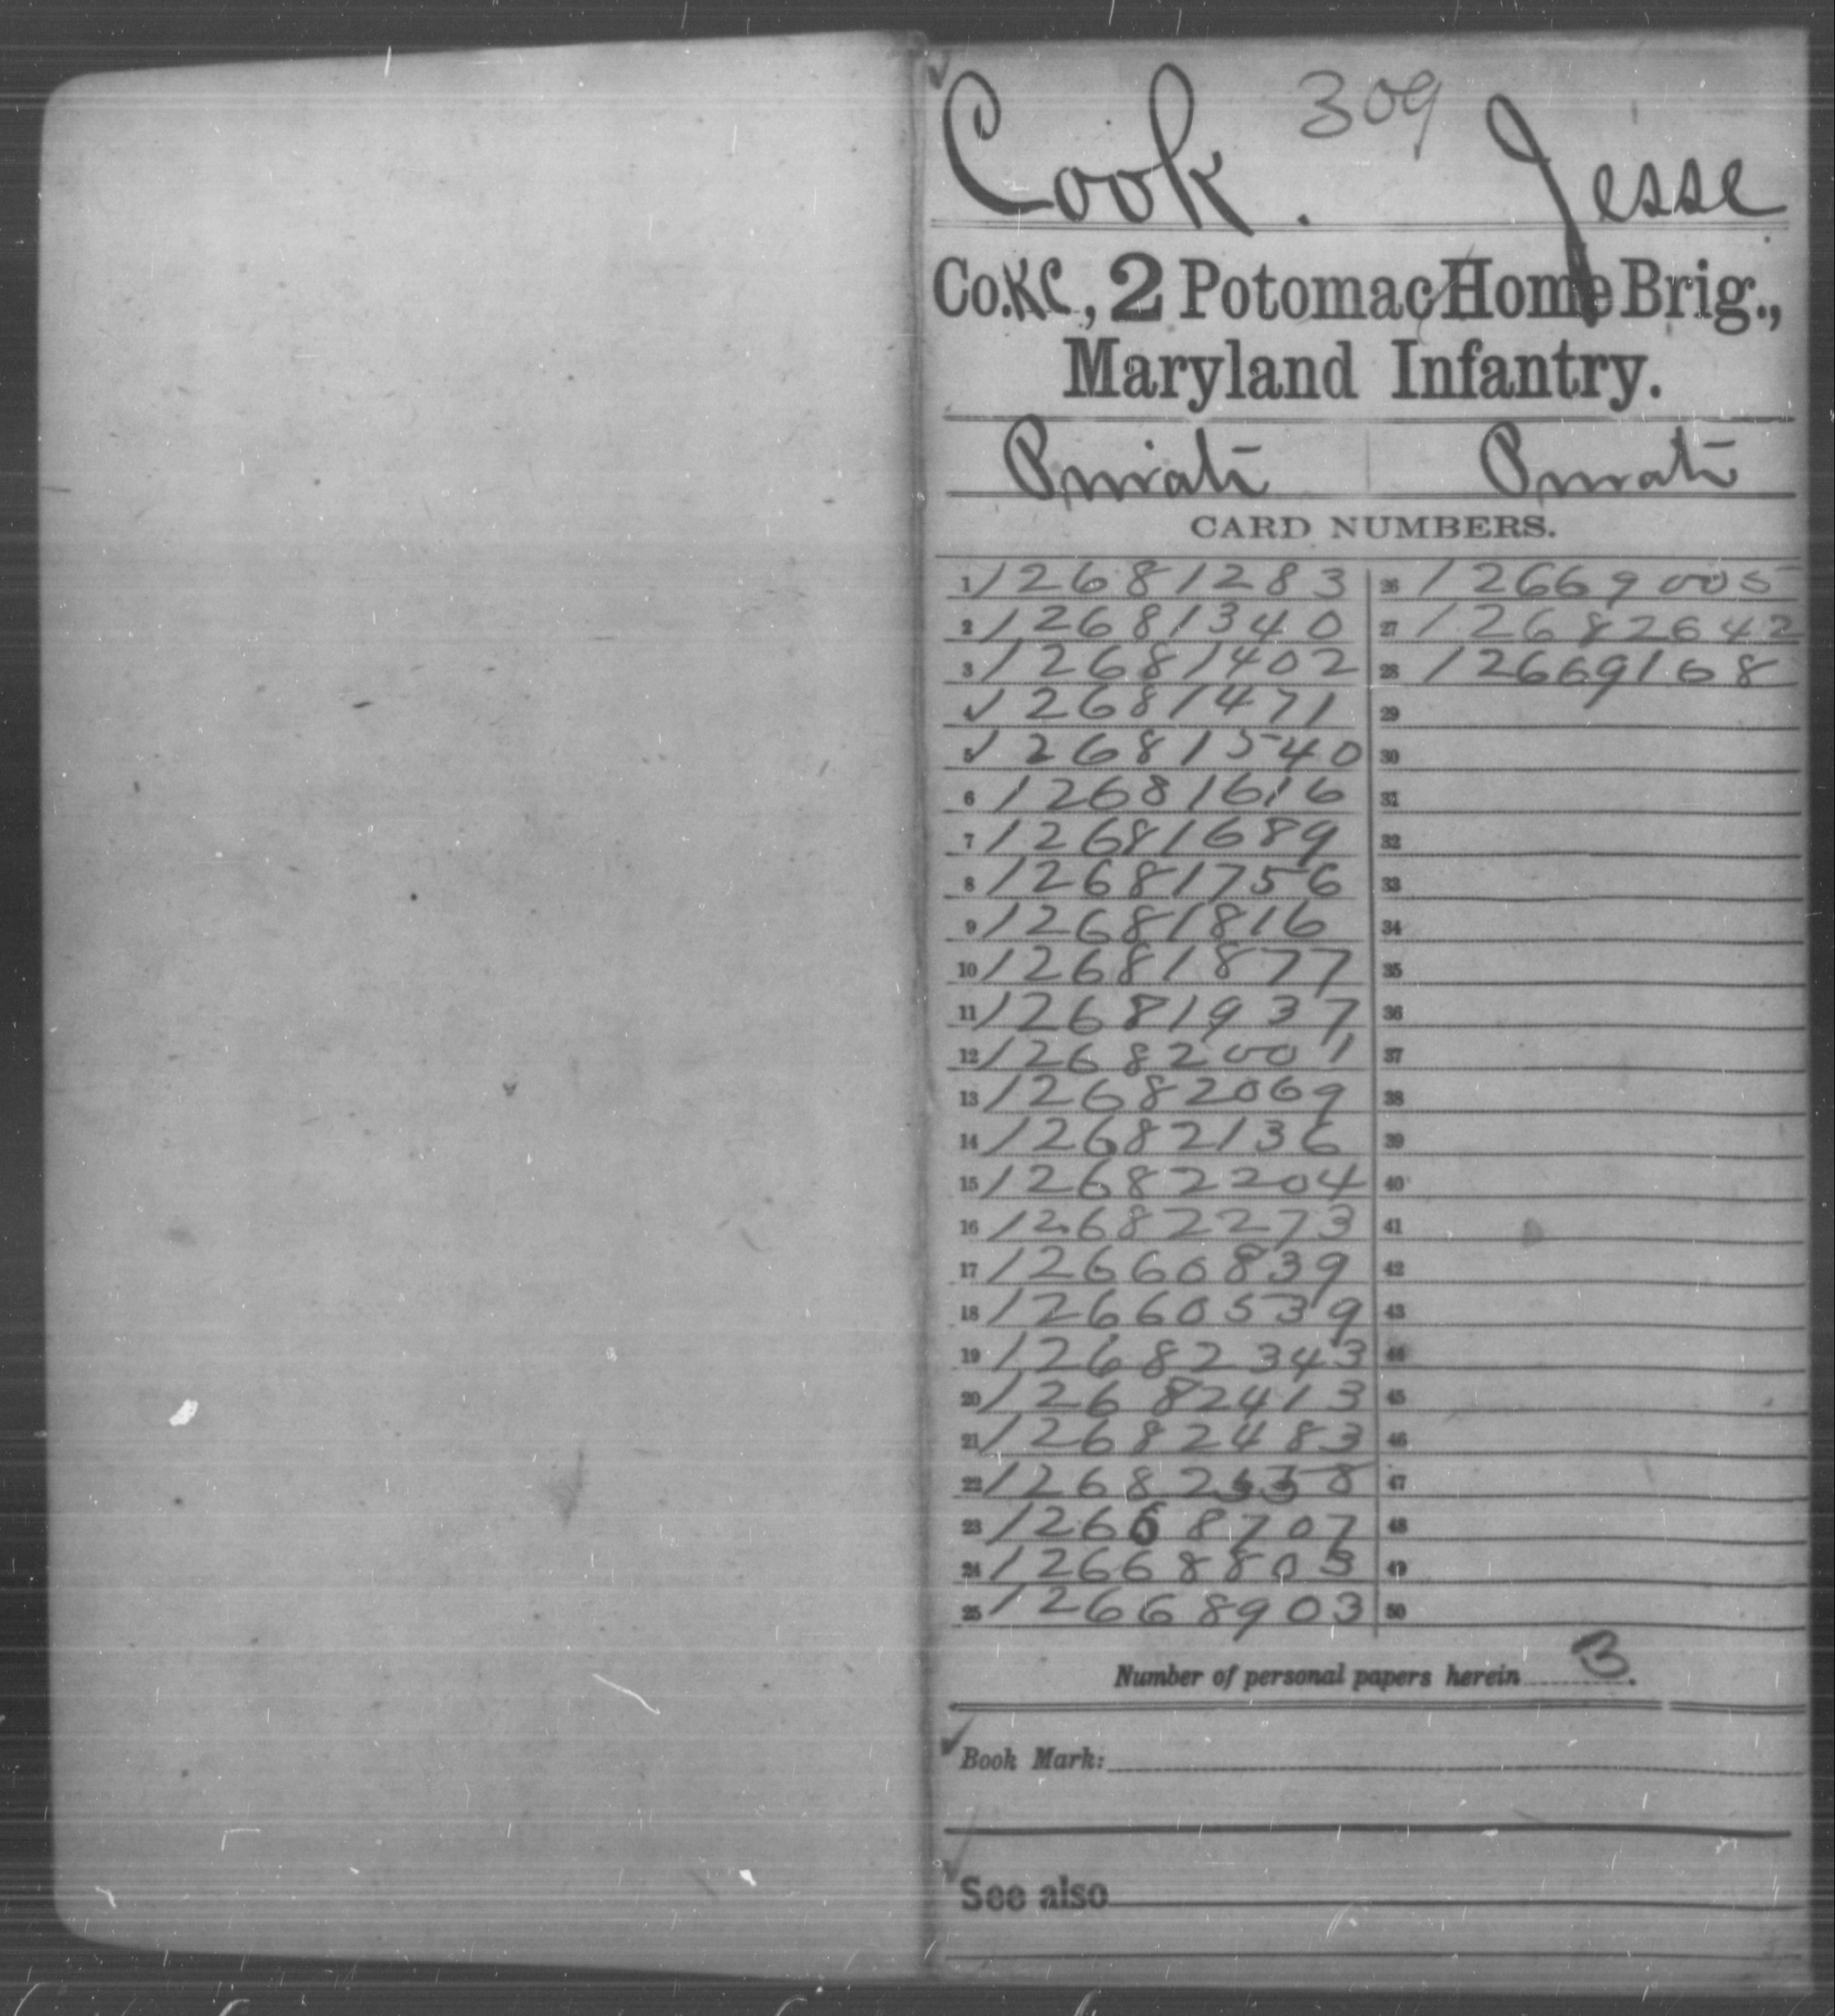 [Maryland] Cook, Jesse - Age 20, Year: 1864 - Second Potomac Home Brigade, Infantry, Al-Whi